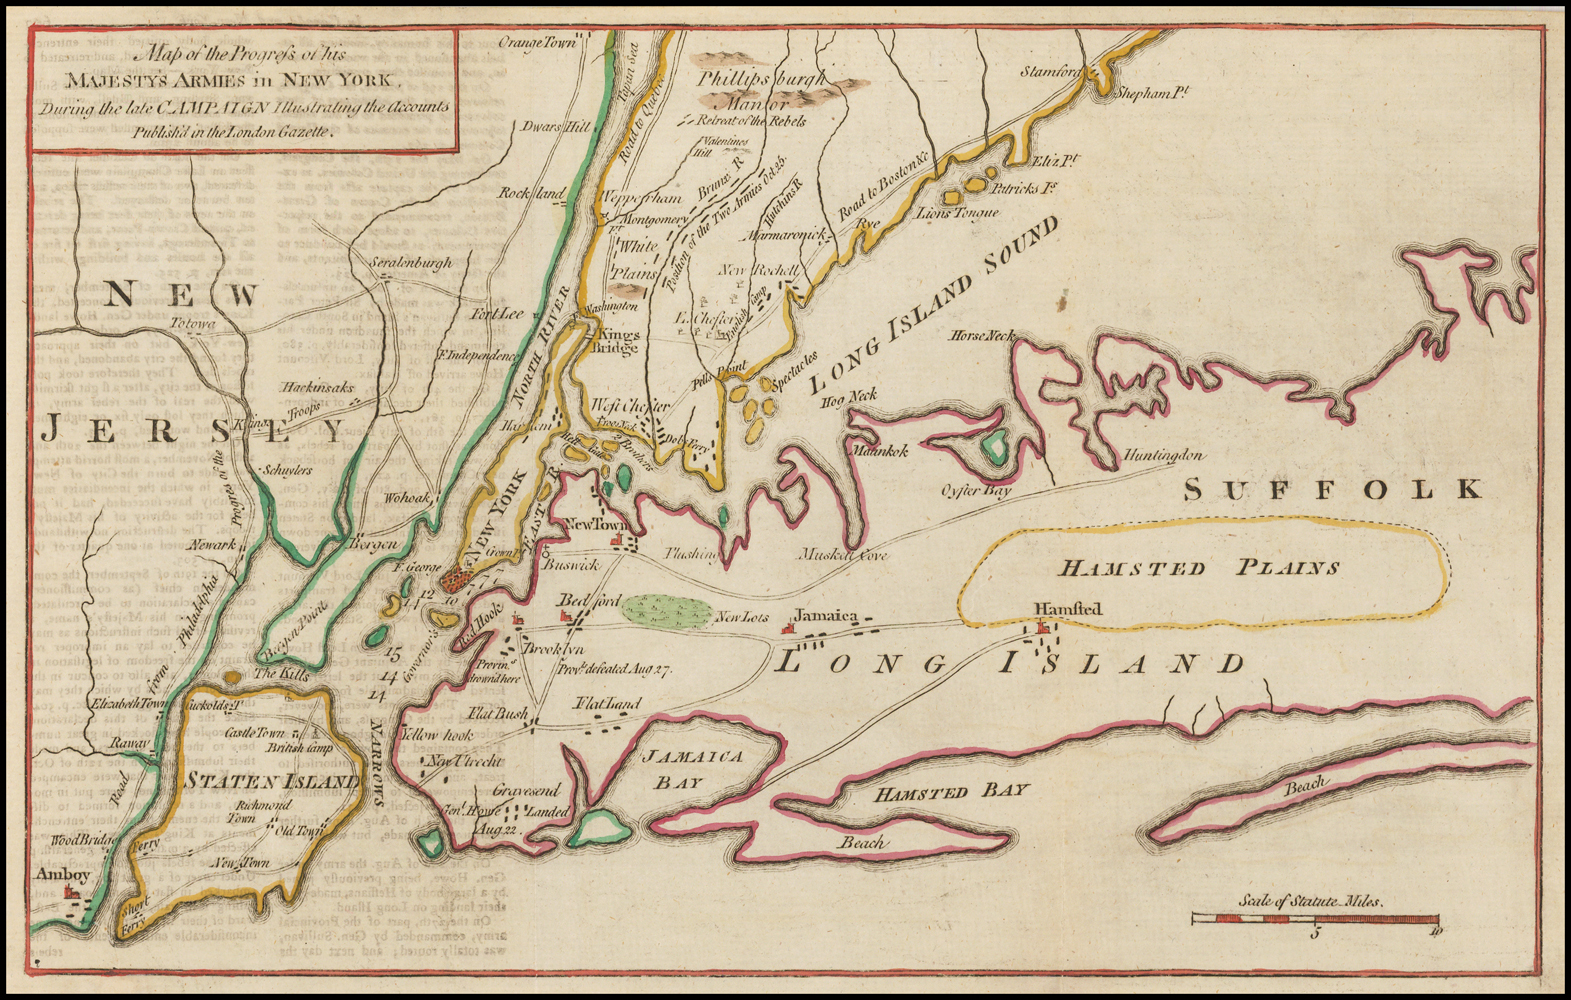 Map Of New York Revolutionary War.Map Of The Progress Of His Majesty S Armies In New York During The